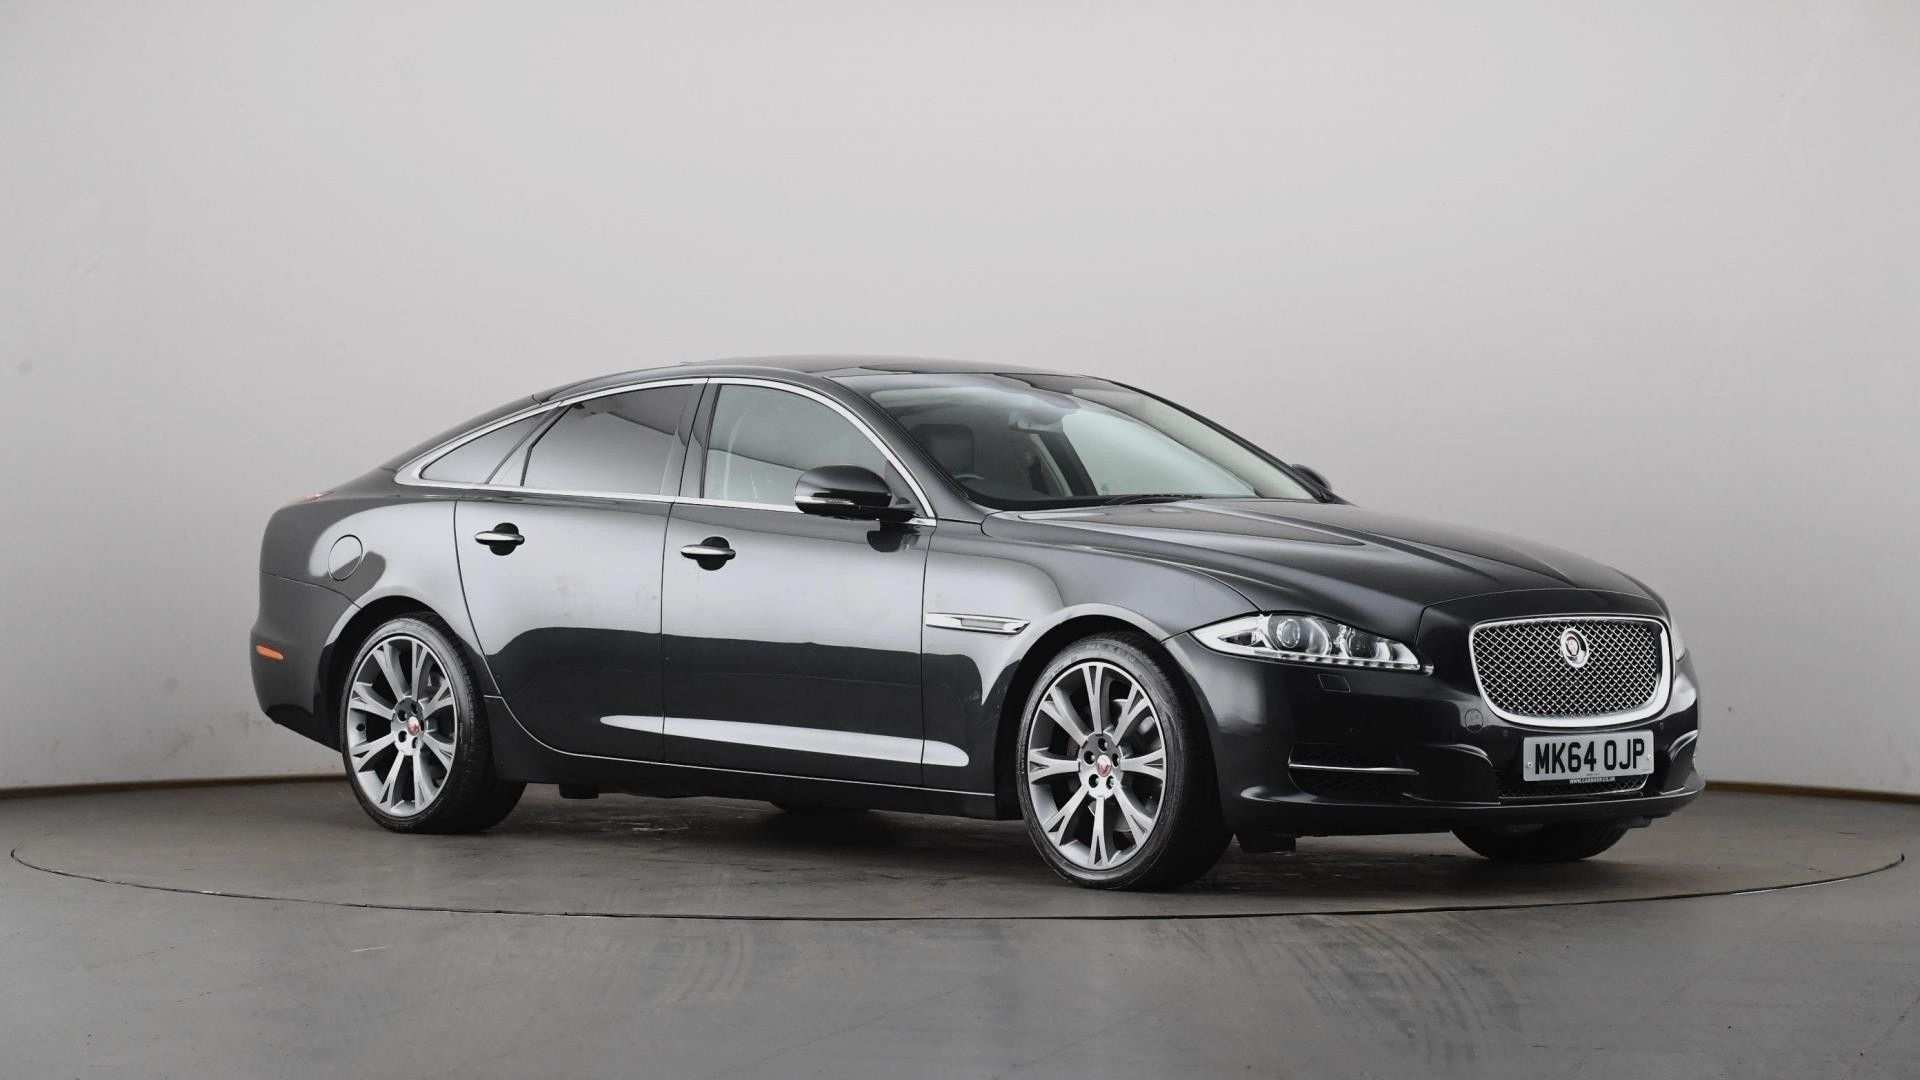 14 All New Jaguar Xe 2020 Release Date Photos with Jaguar Xe 2020 Release Date